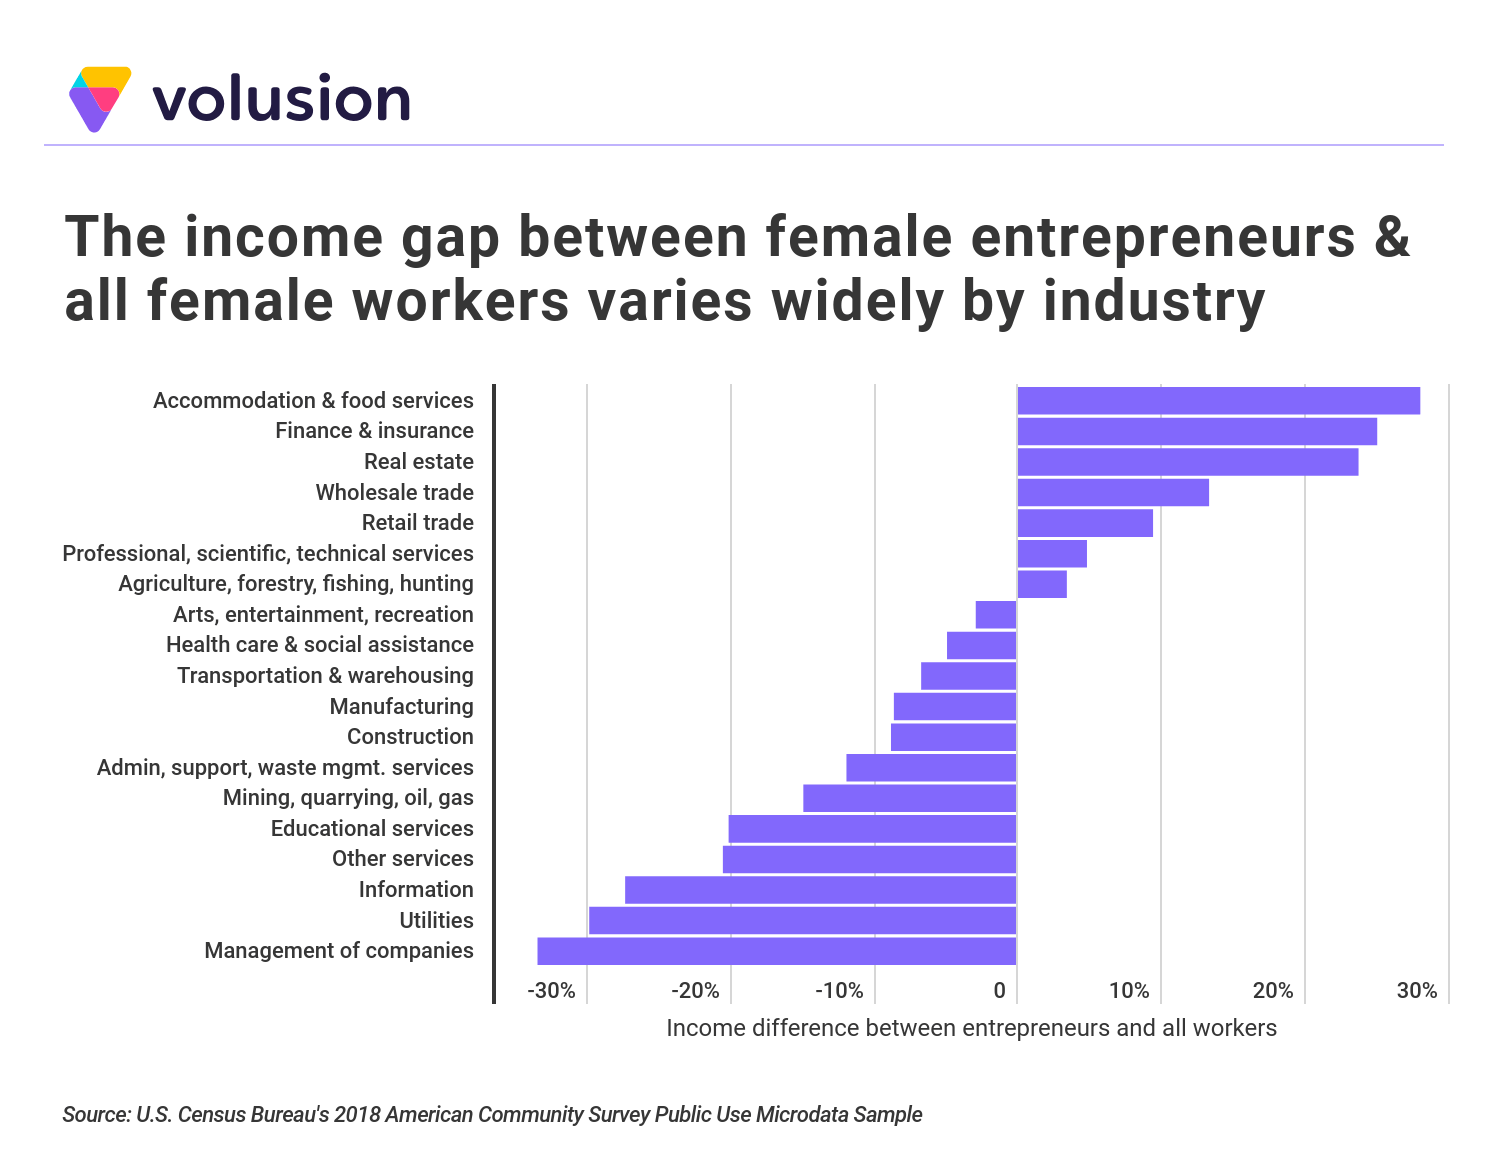 Chart demonstrating that the income gap between female entrepreneurs and all female workers varies widely by industry.